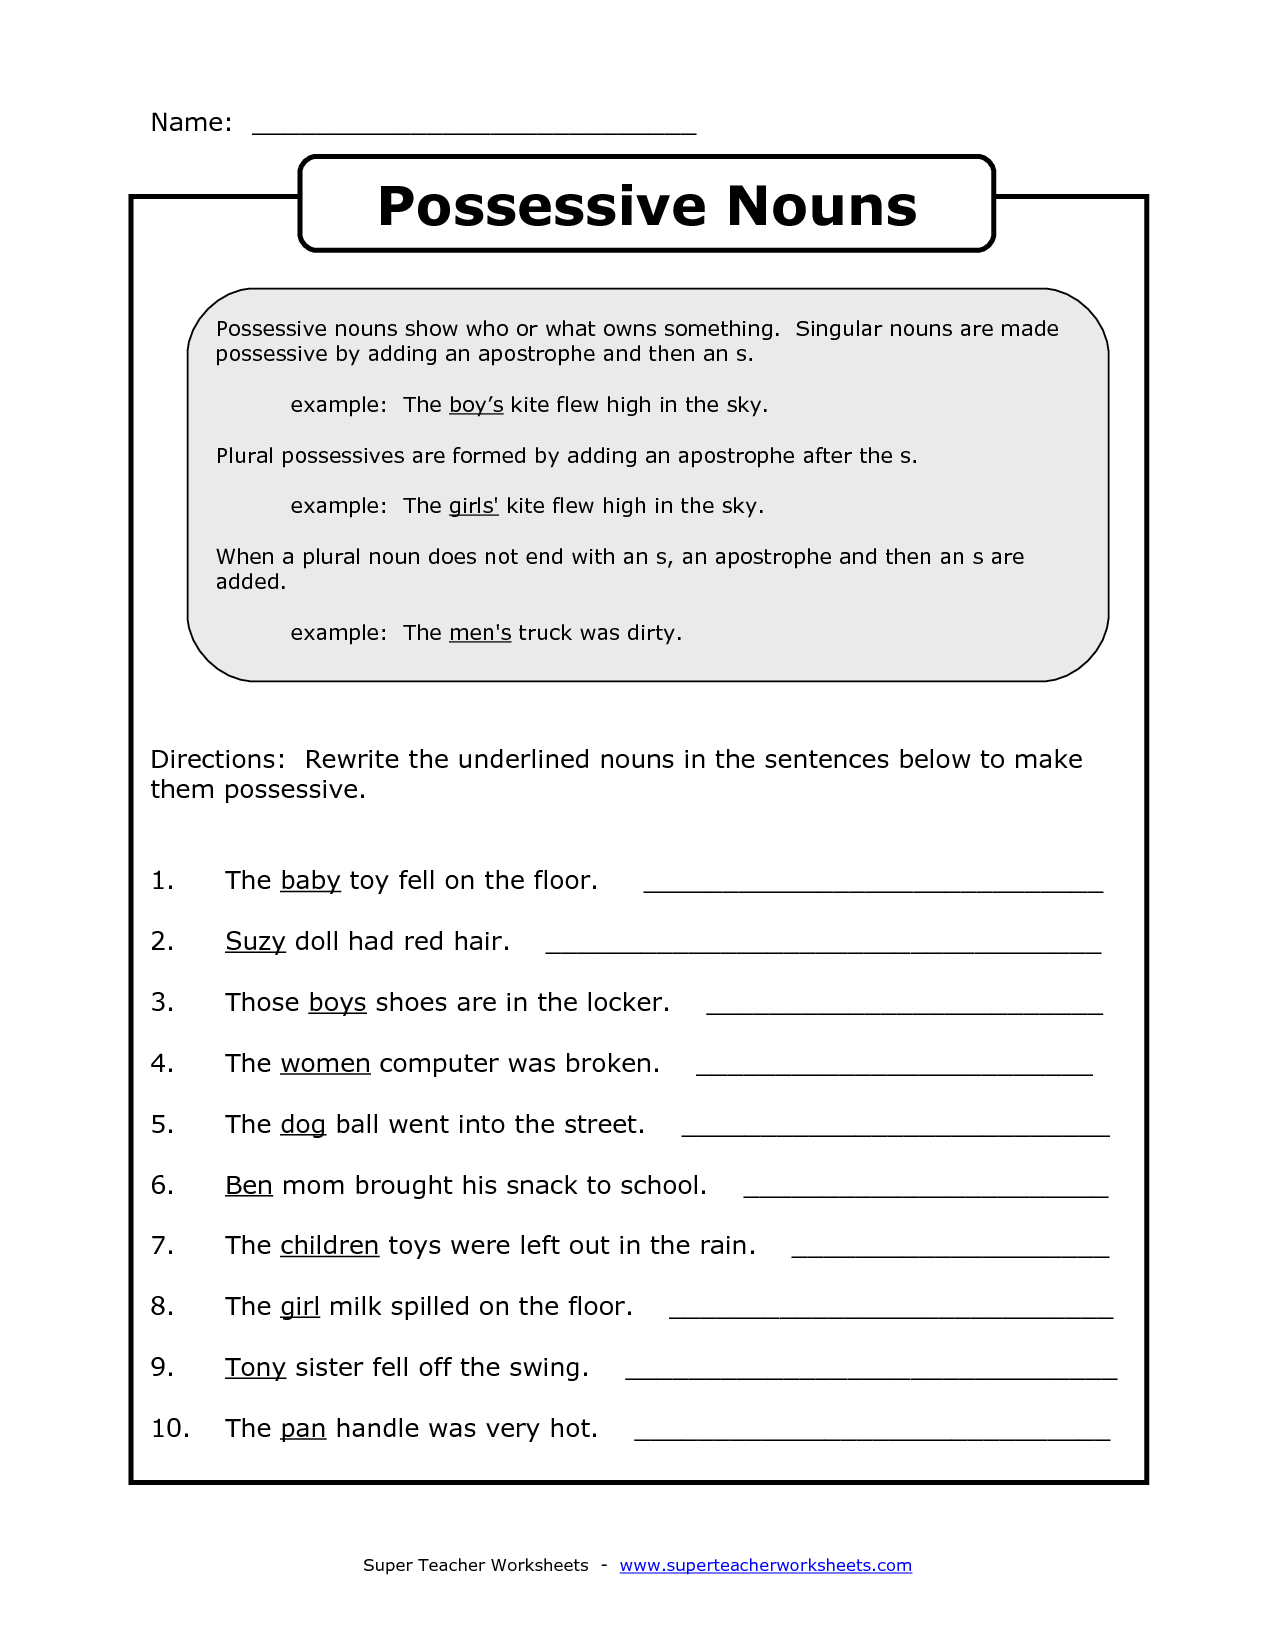 15 Best Images Of Possessive Nouns Worksheets 5th Grade